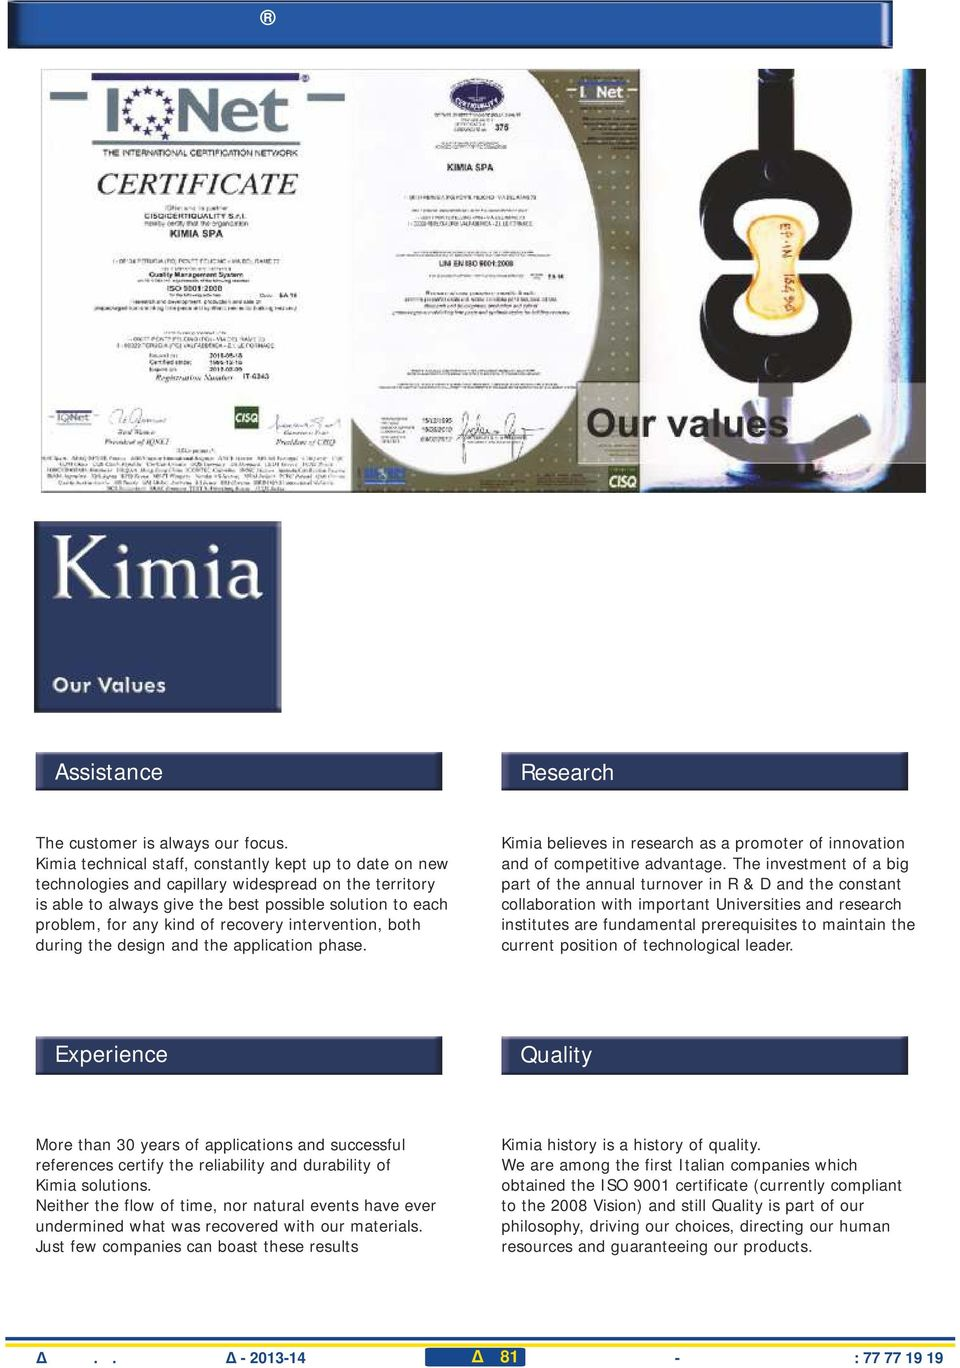 recovery intervention, both during the design and the application phase. Kimia believes in research as a promoter of innovation and of competitive advantage.